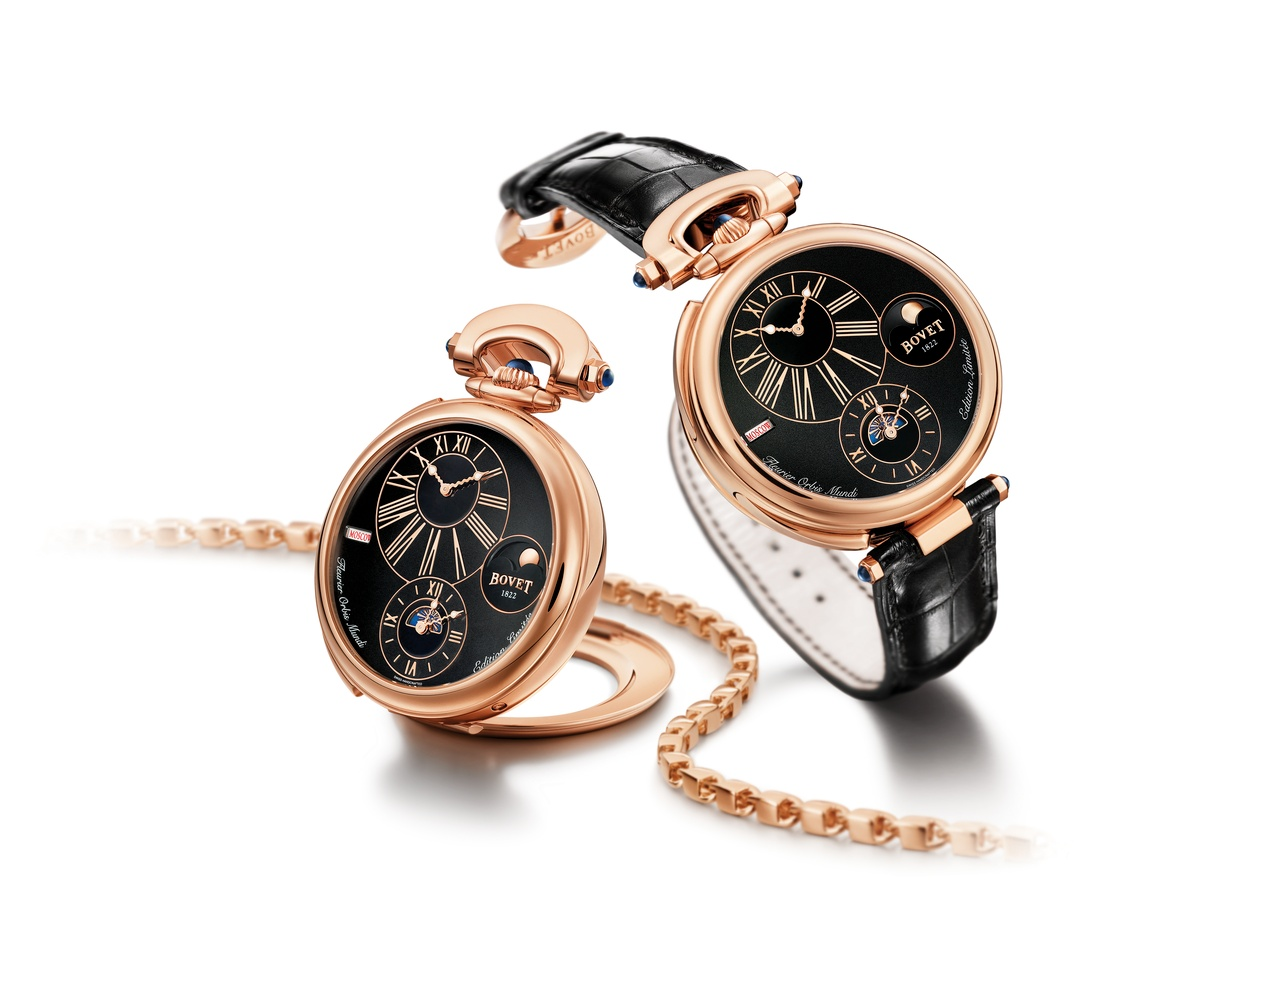 Bovet Watch   Amadeo Fleurier Complications   Ref. Nr.  AFOMP001    Call 312-944-3100  | For Availability